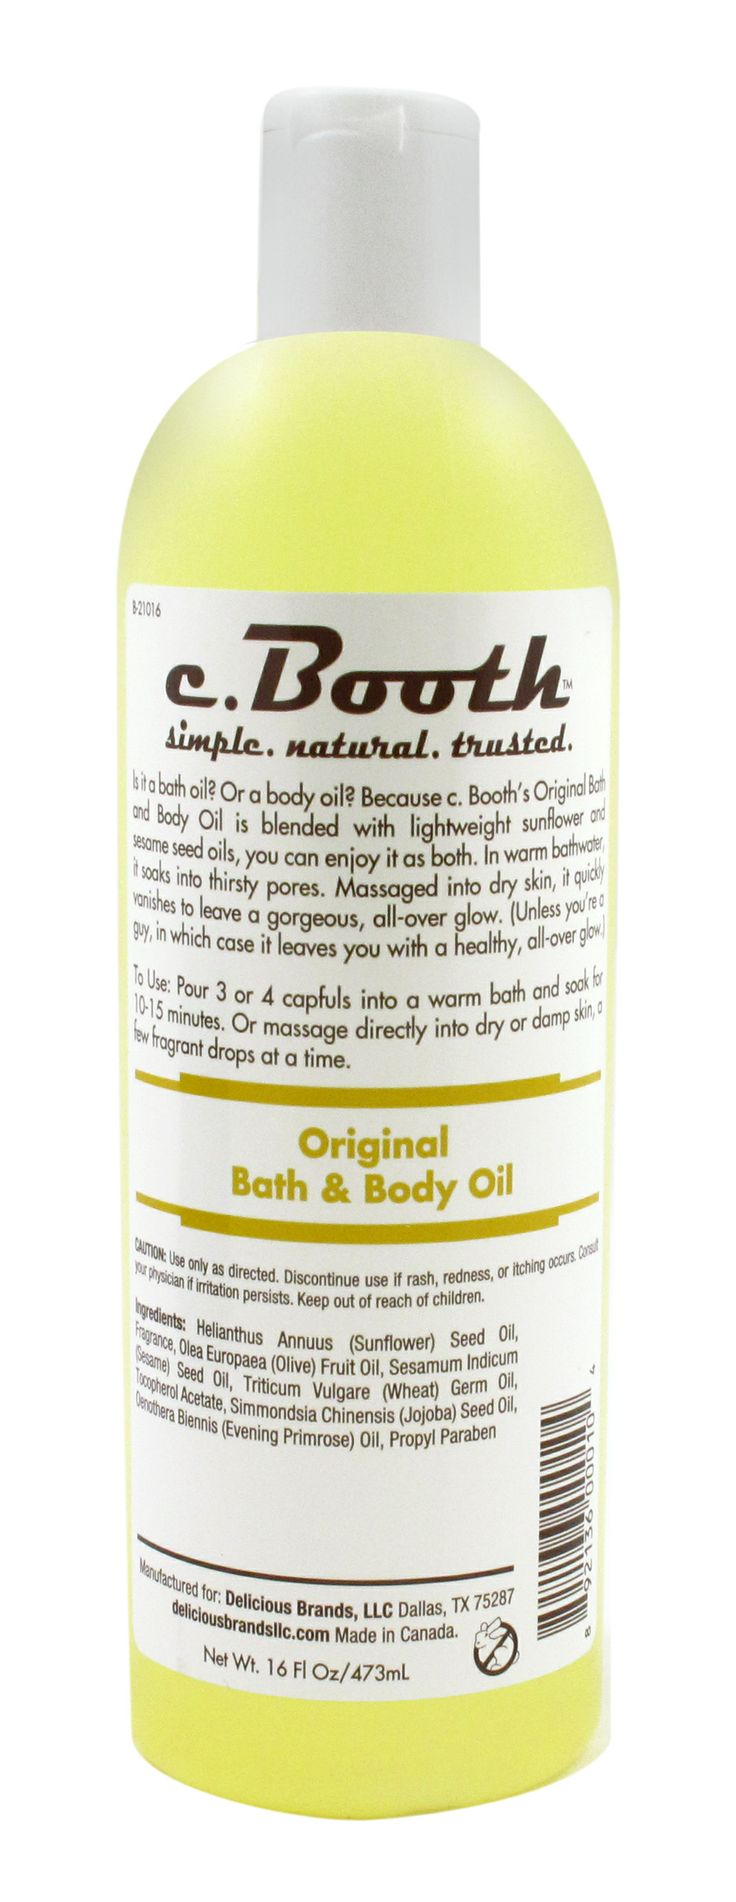 bath time will never be the same again with our bath oil.....